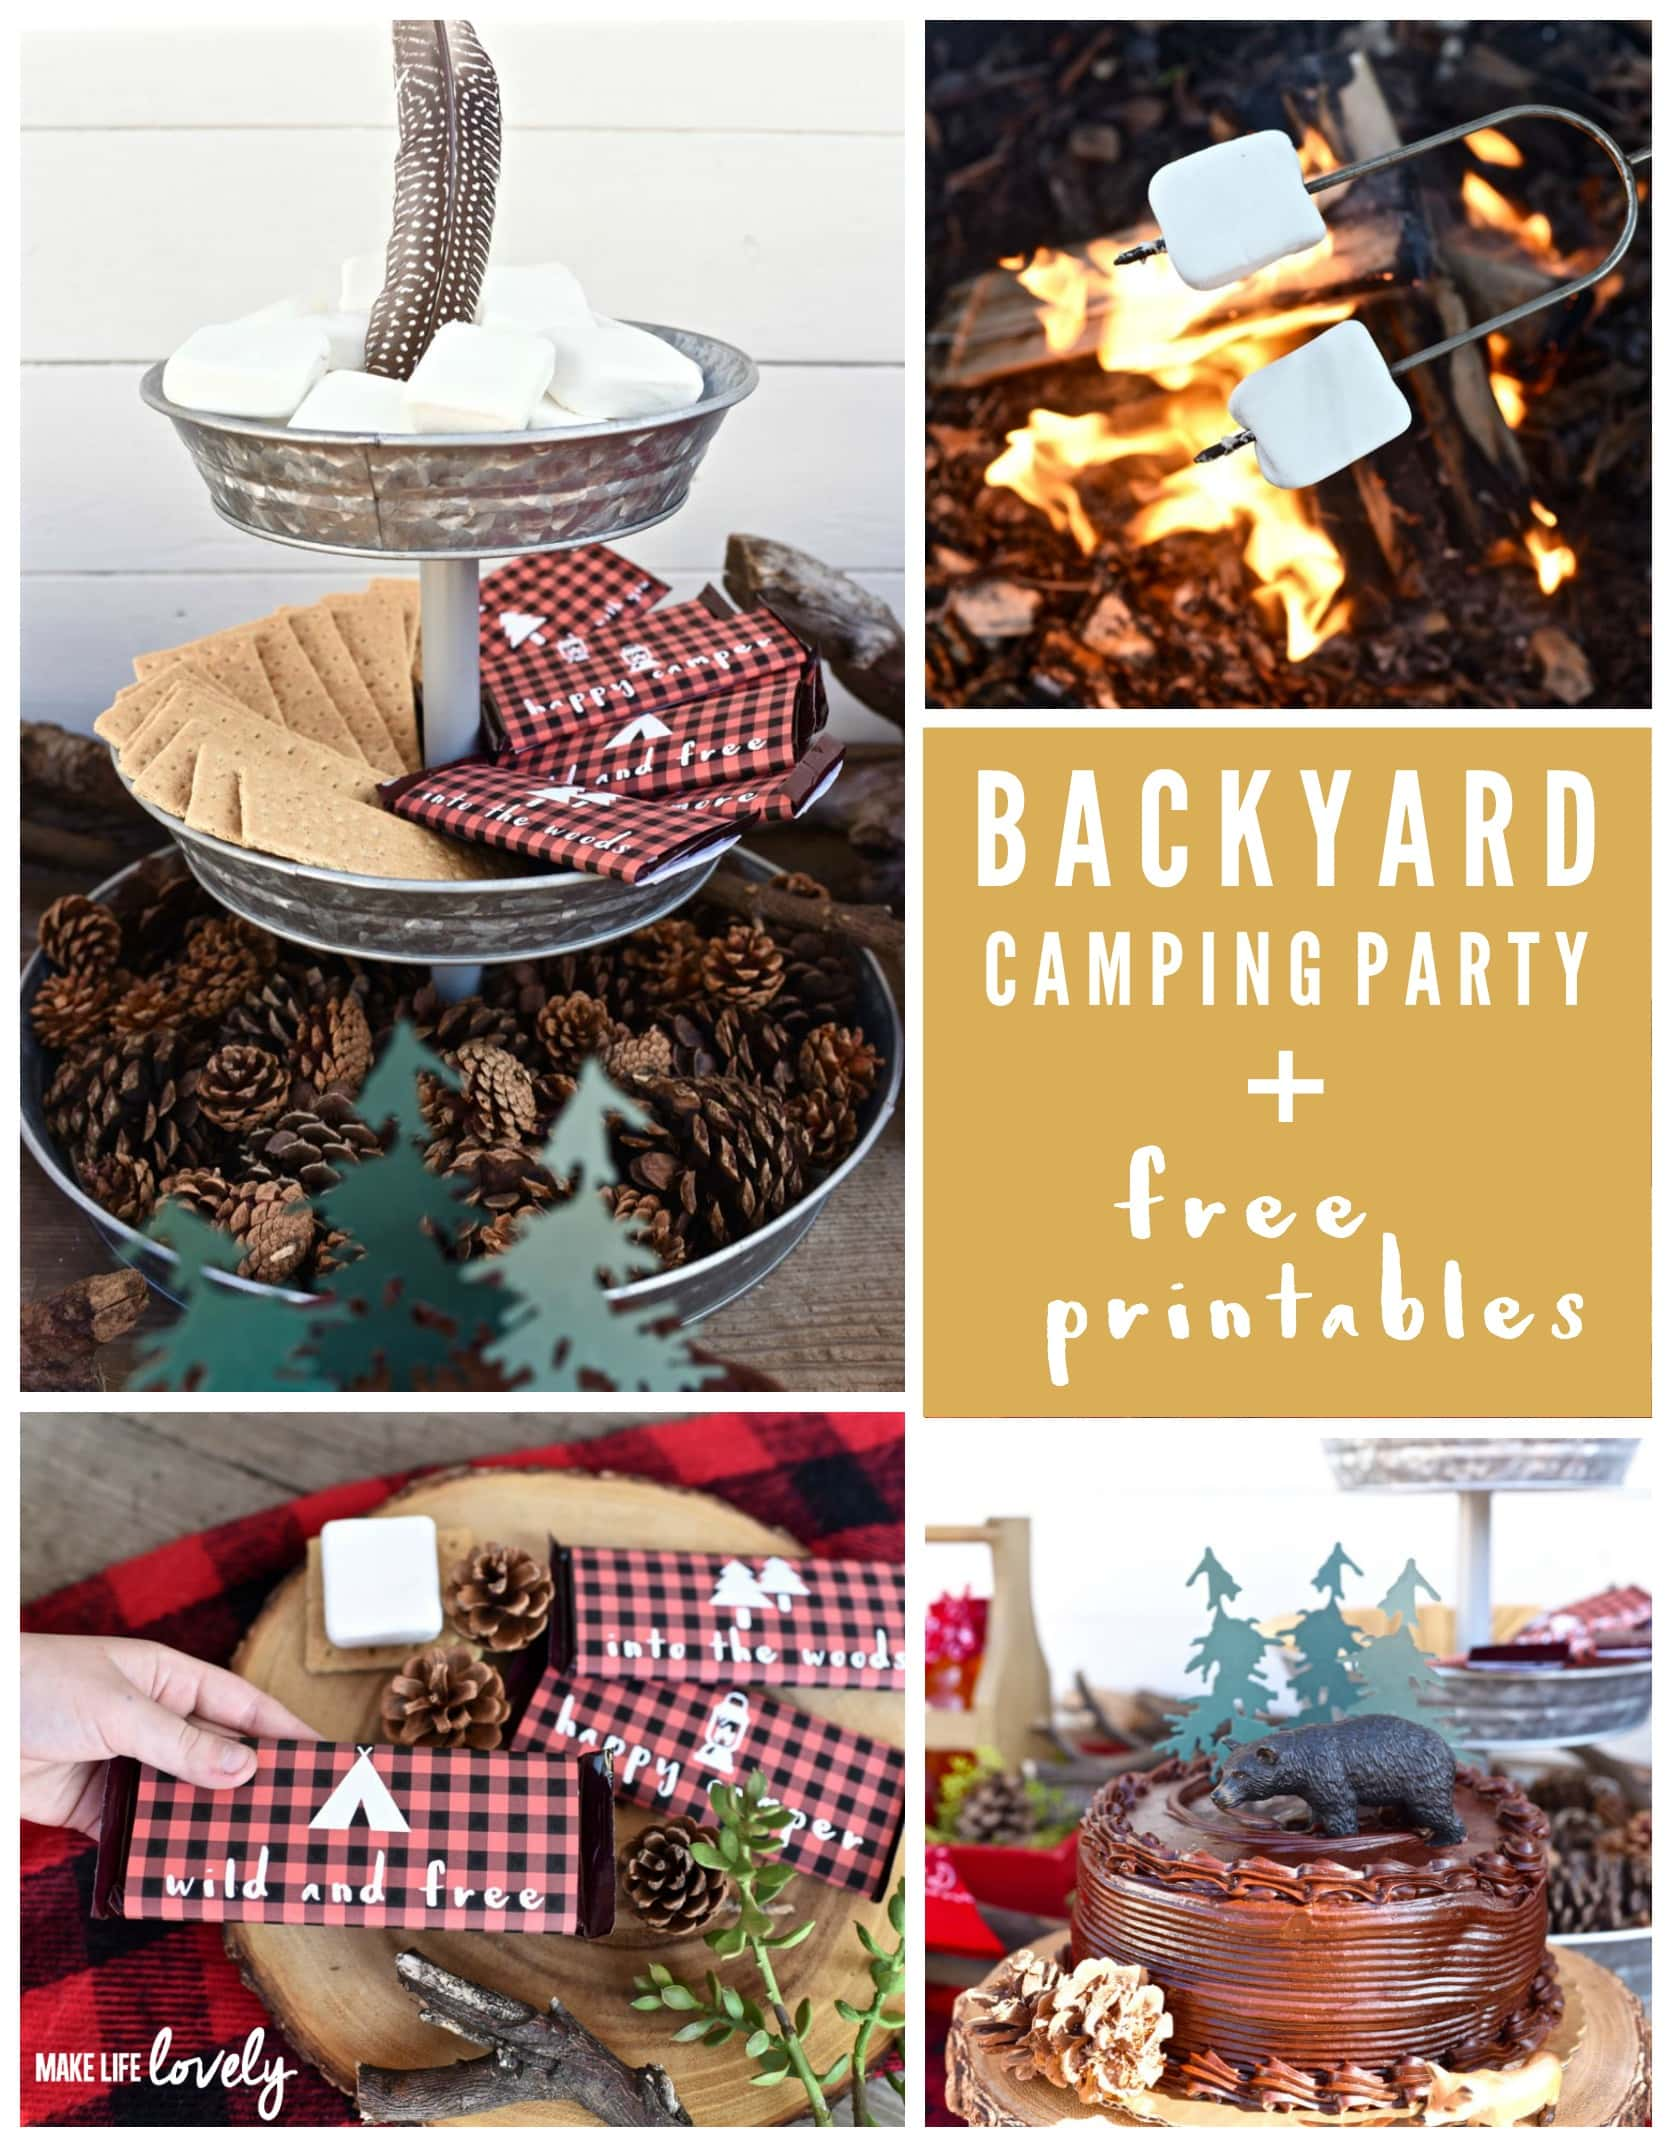 Backyard Camping Party - Make Life Lovely